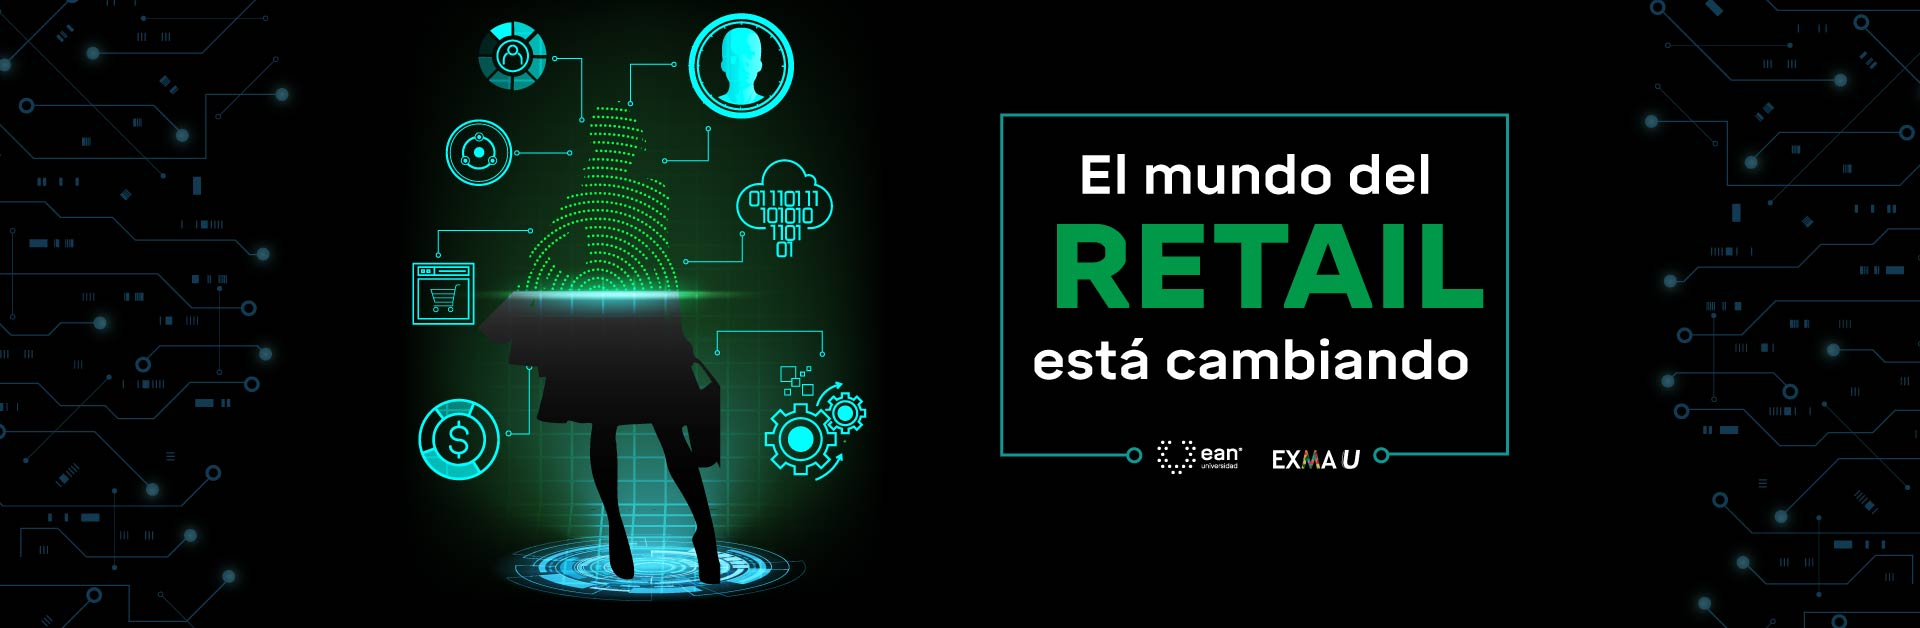 La revolución del retail, tema del 1er. Congreso Internacional de Marketing.